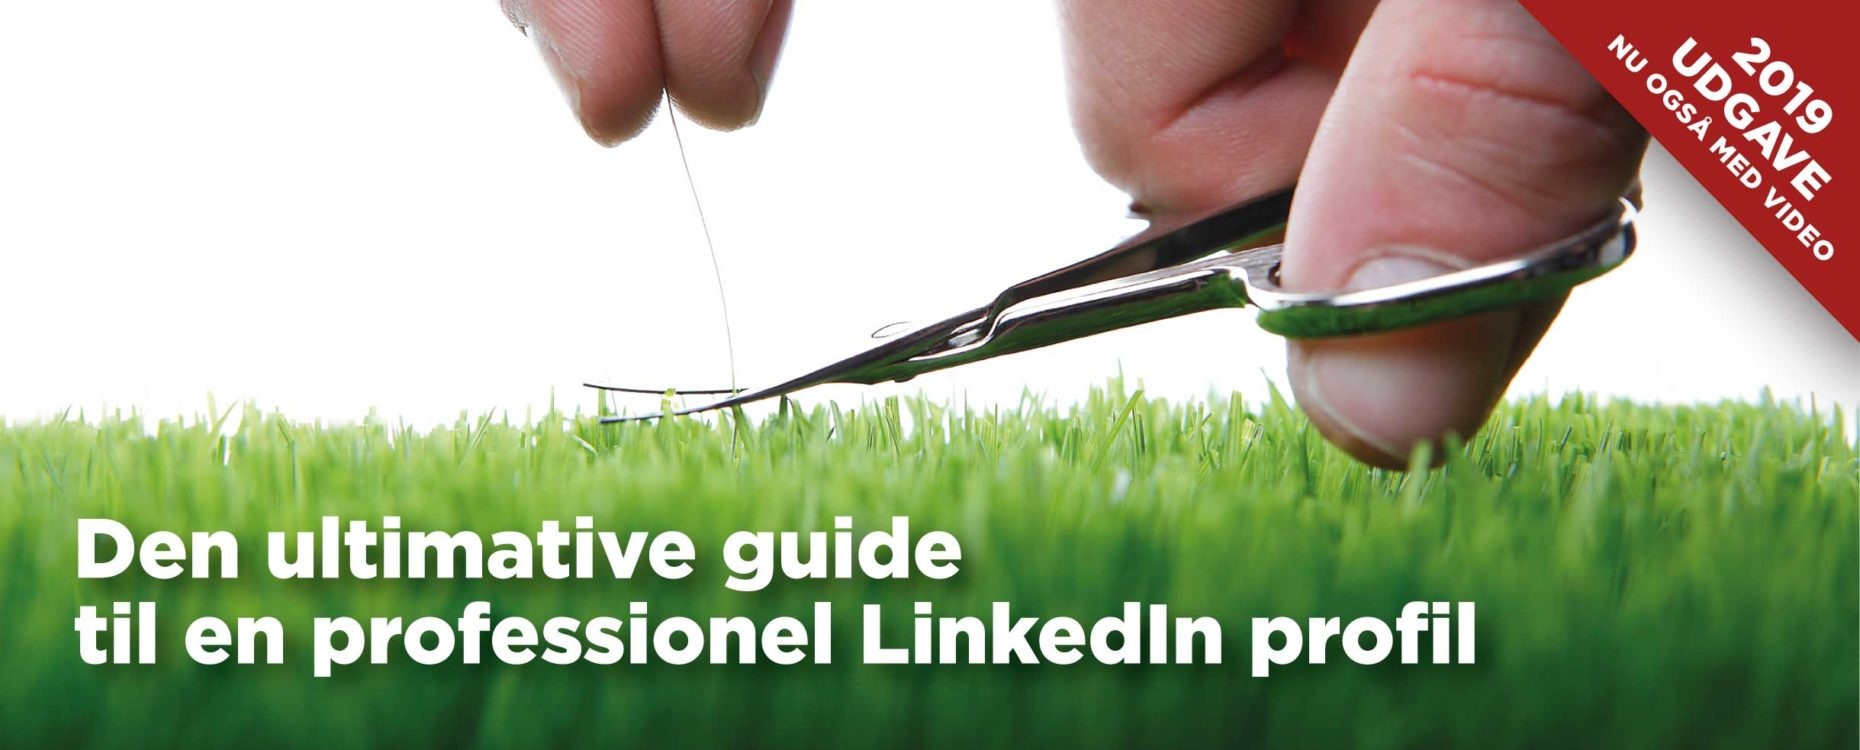 LinkedIn profil guide: Den ultimative guide til en professionel LinkedIn profil - Social Selling Company